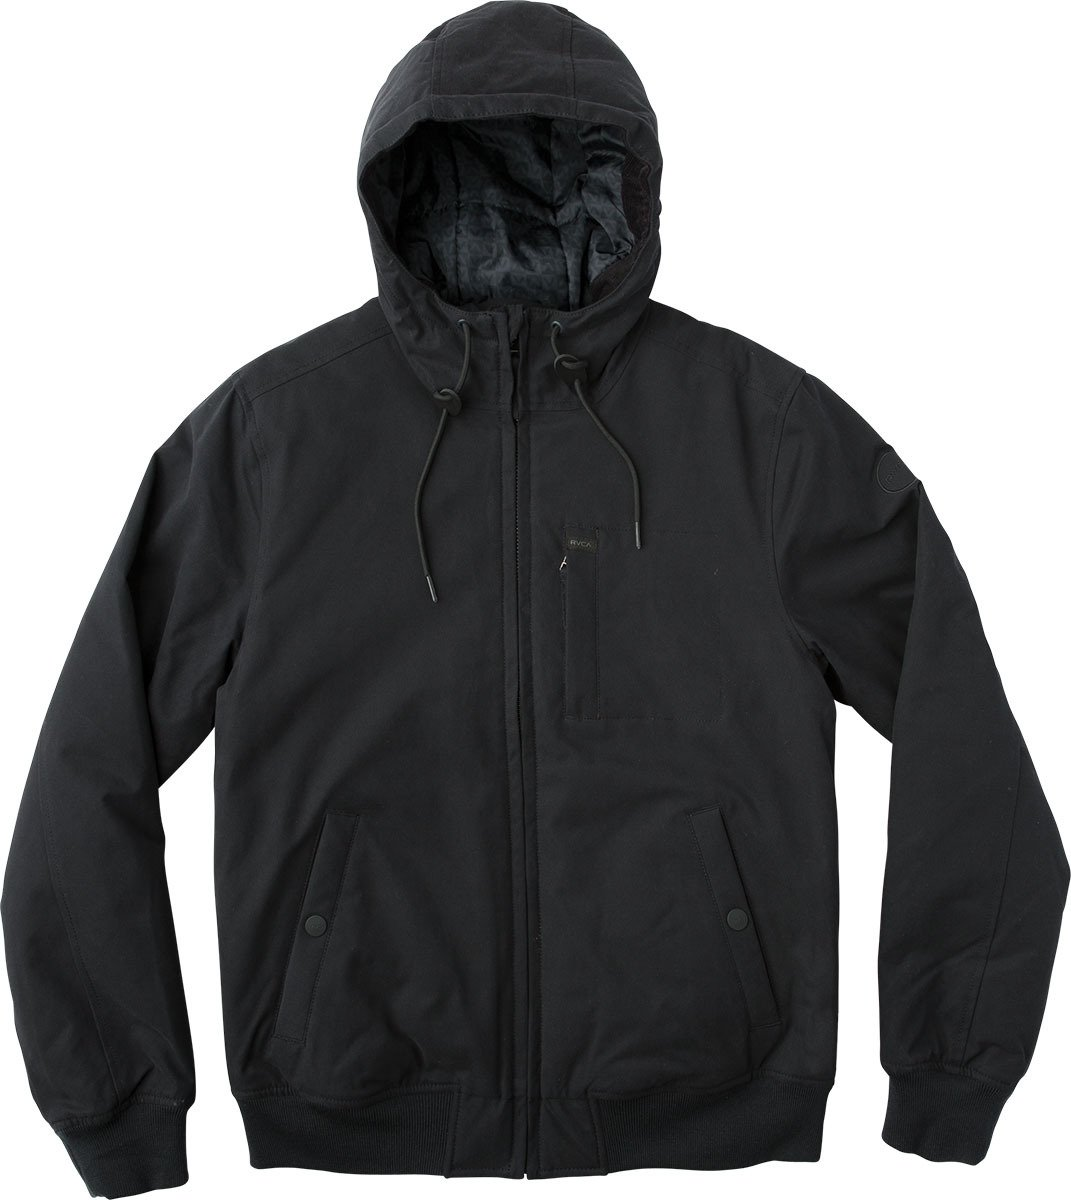 RVCA Men's Hooded Bomber Jacket, Black, M by RVCA